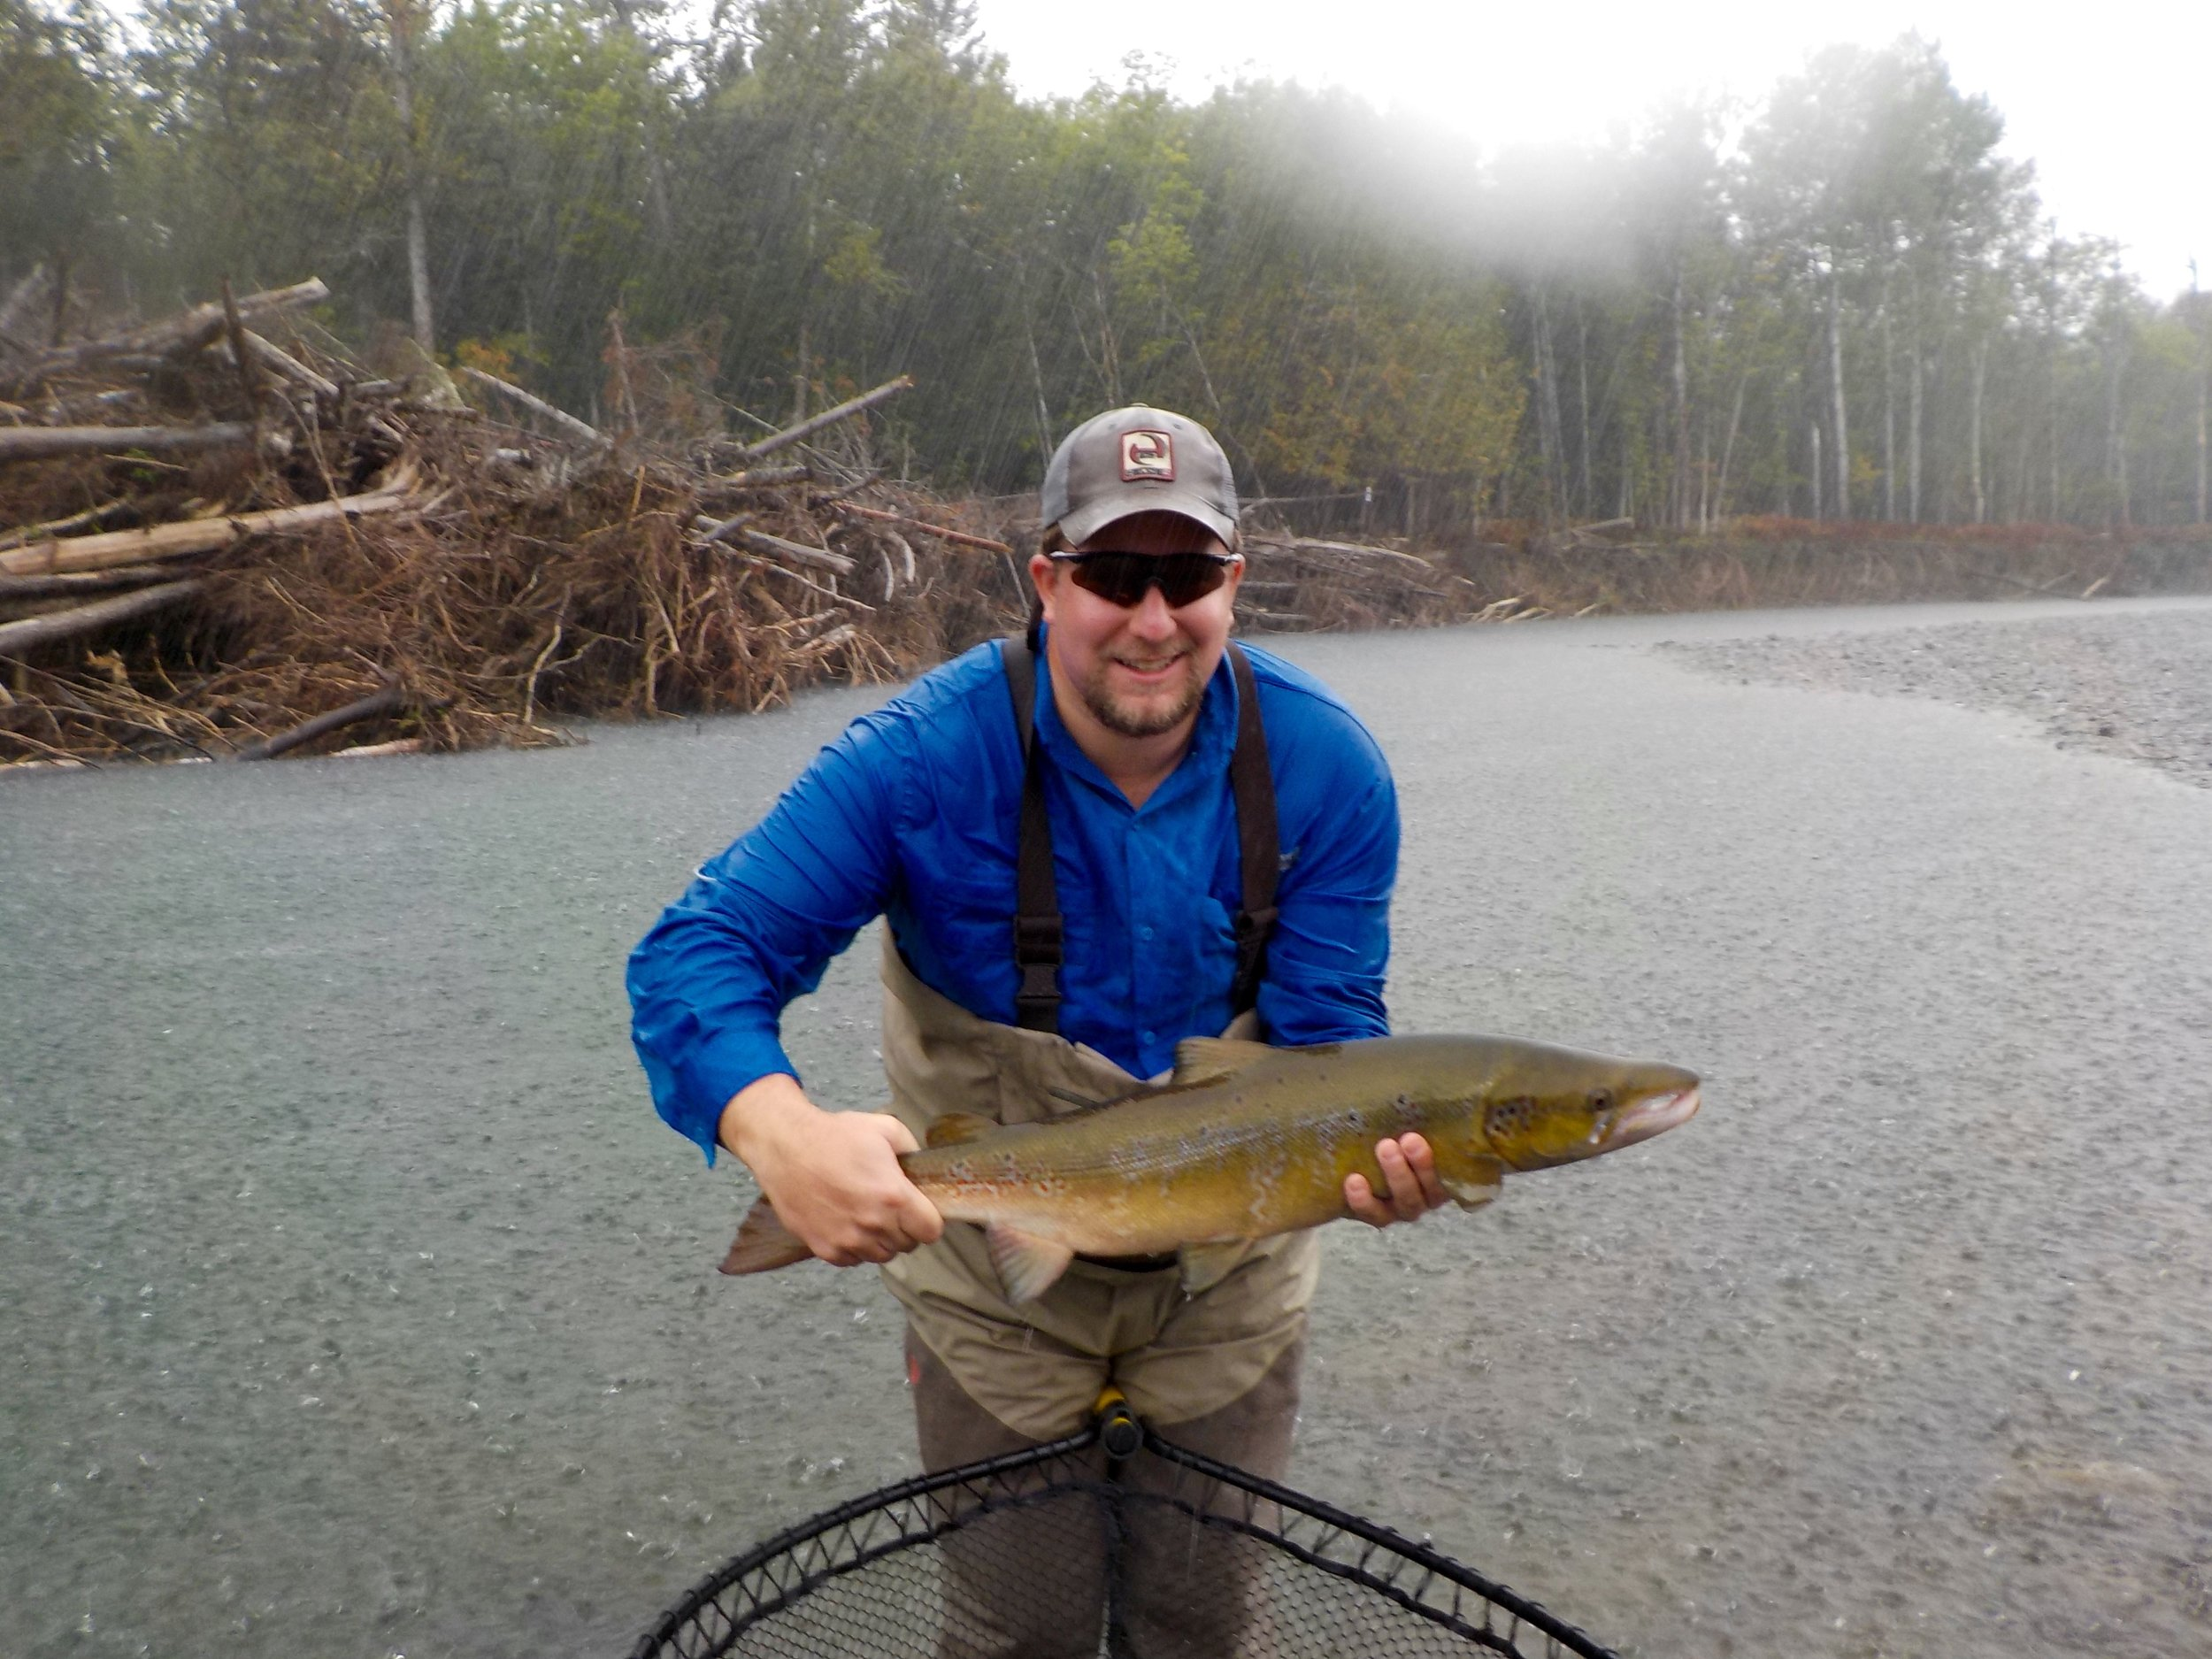 Chet Warner with his first Atlantic Salmon, Congratulations Chet! may it be the first of many more to come.